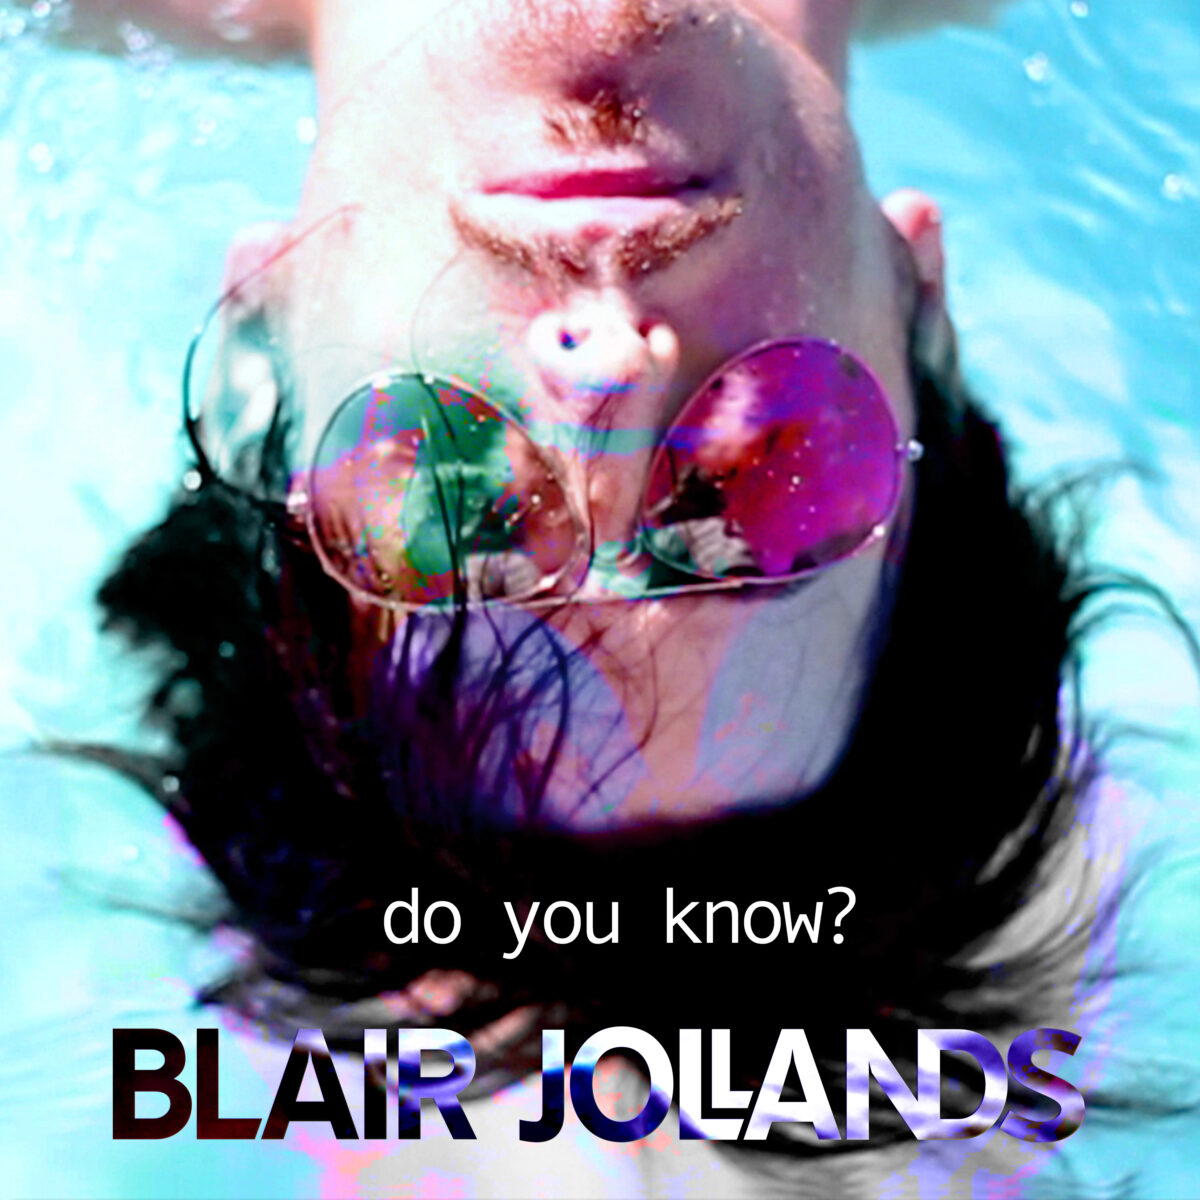 Do You Know? latest release by Blair Jollands